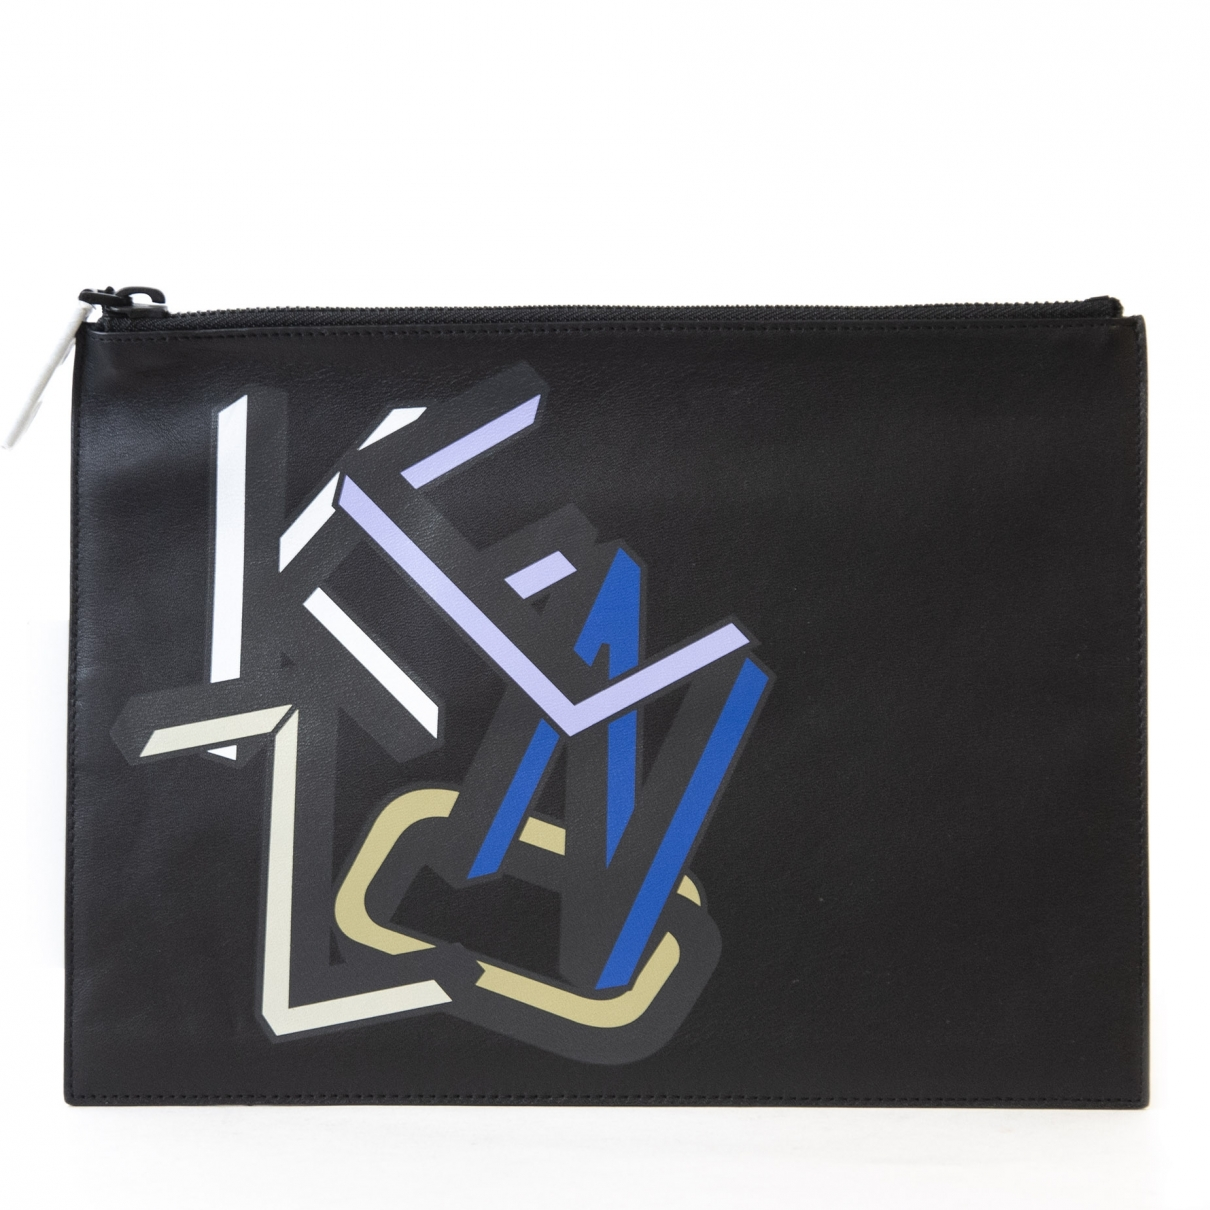 Kenzo \N Black Leather Clutch bag for Women \N